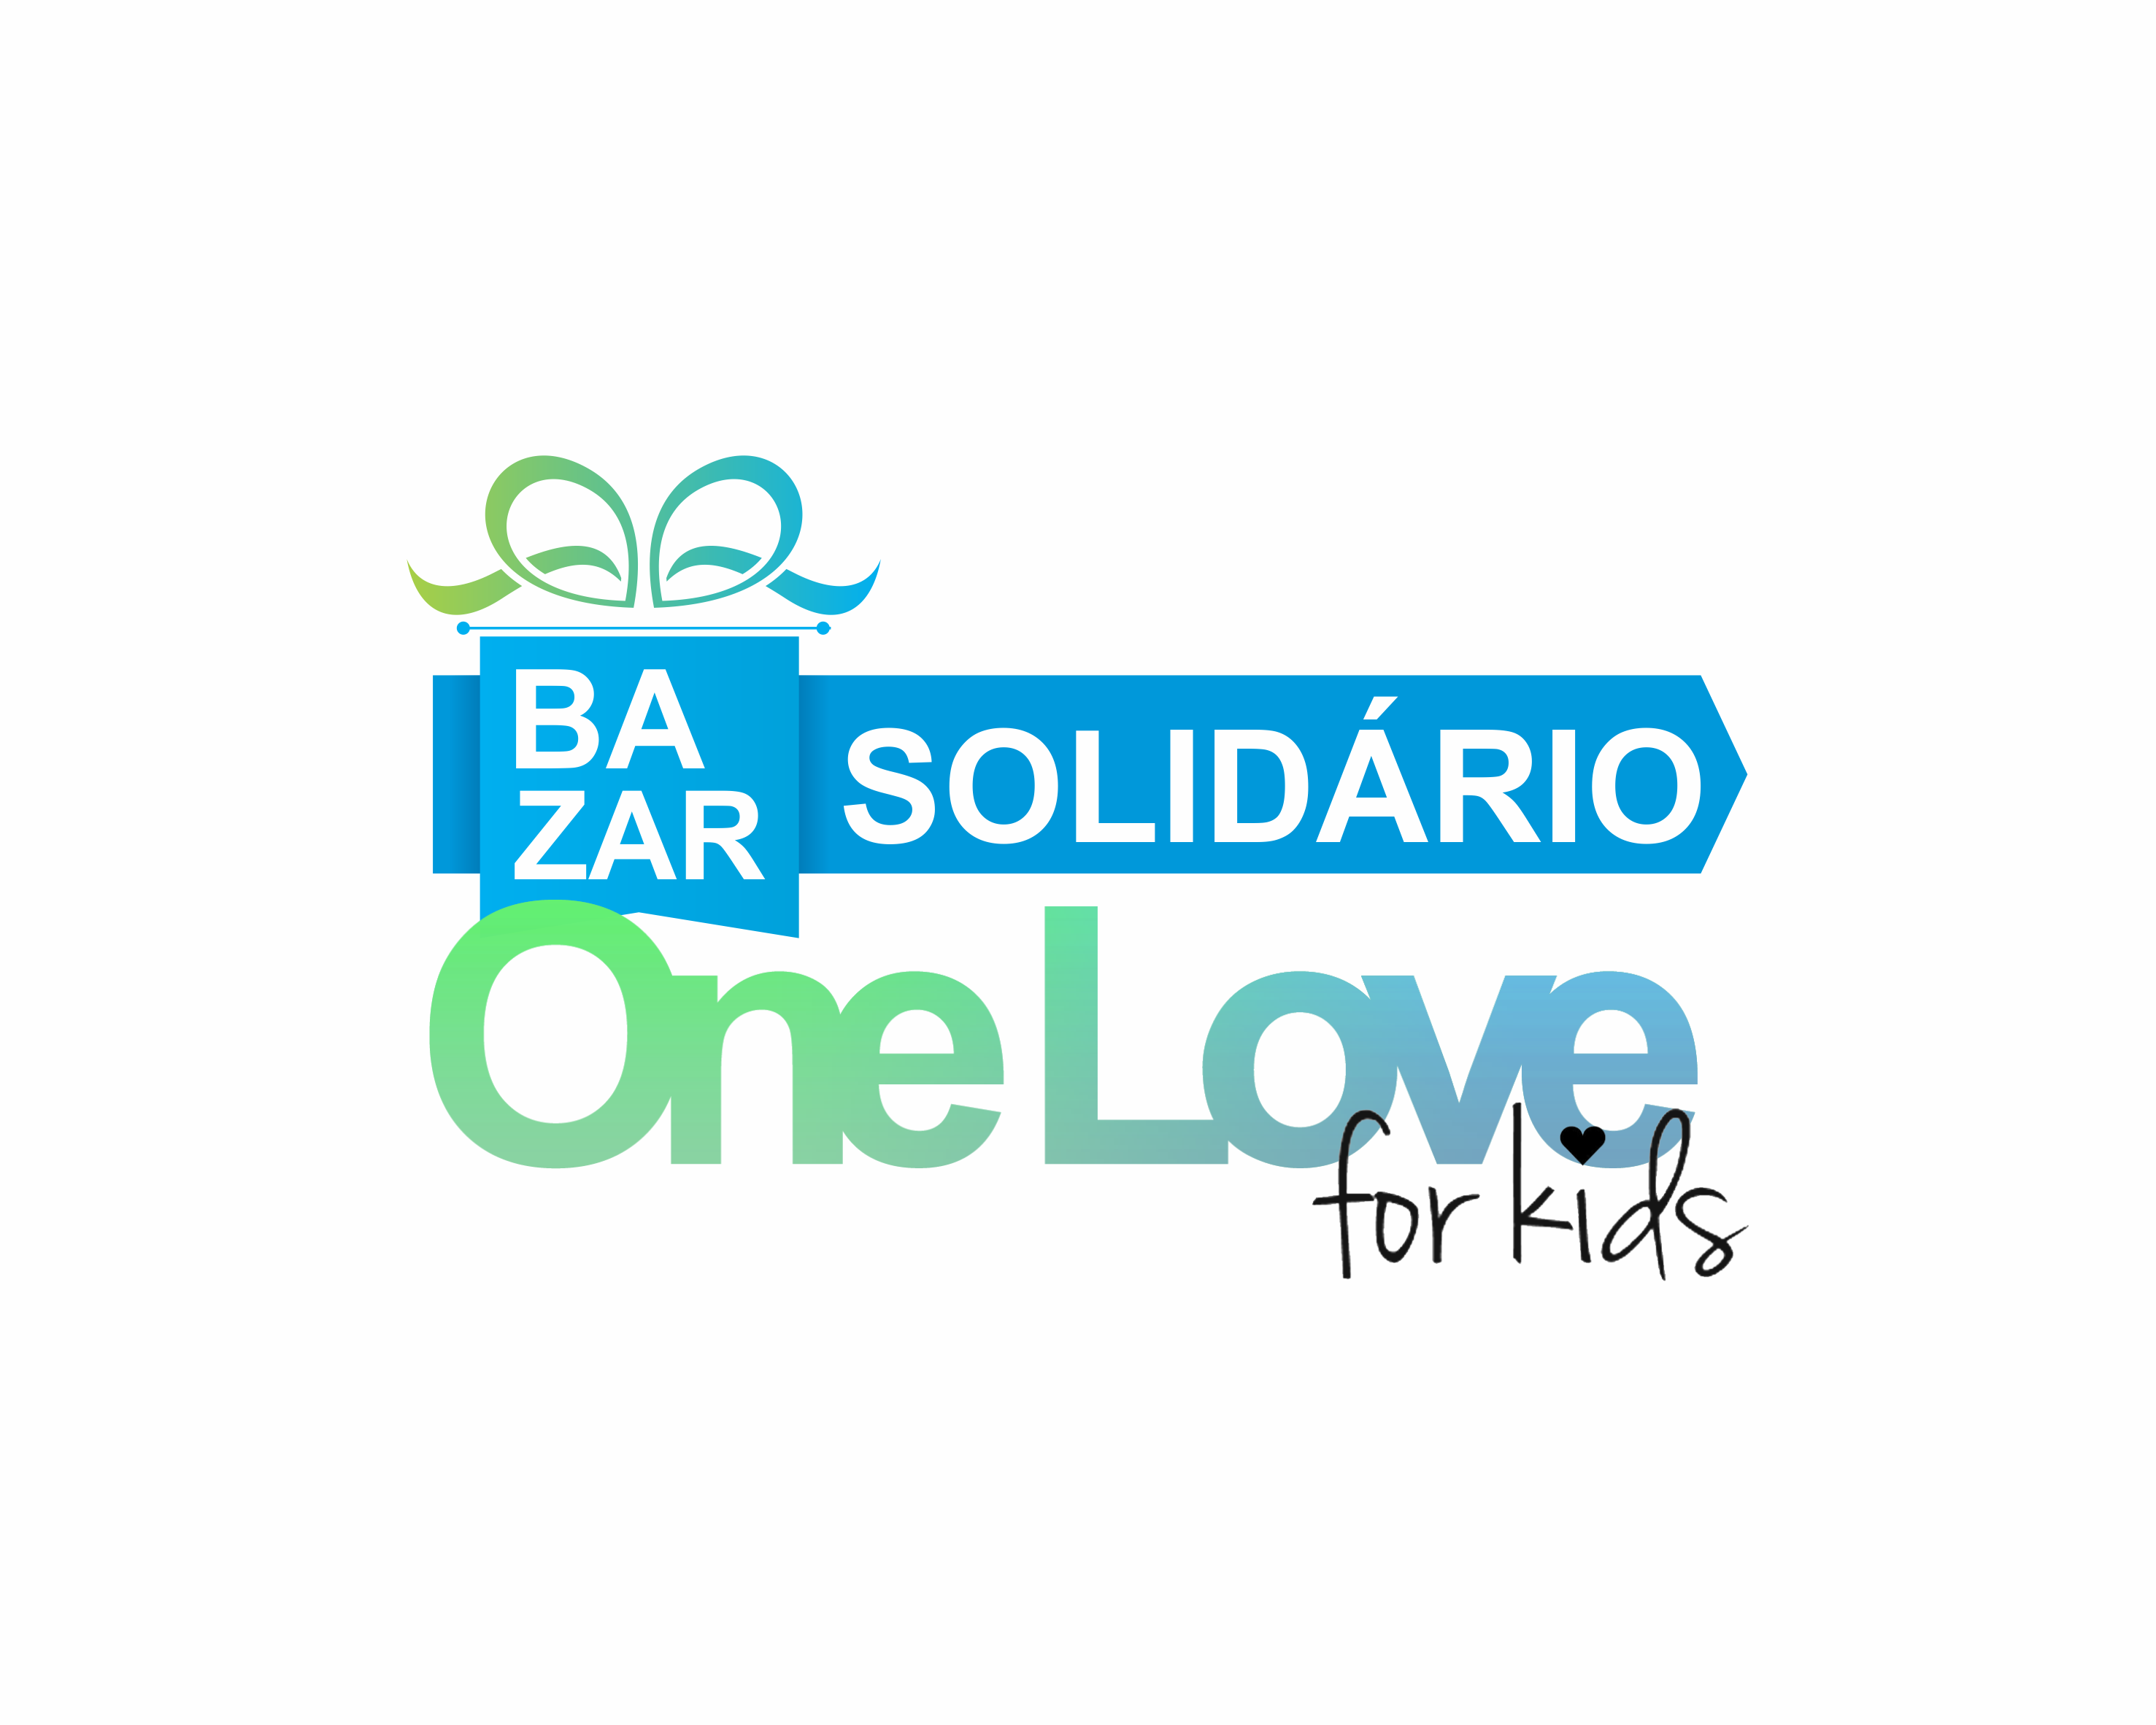 MM_Bazar One Love for Kids_